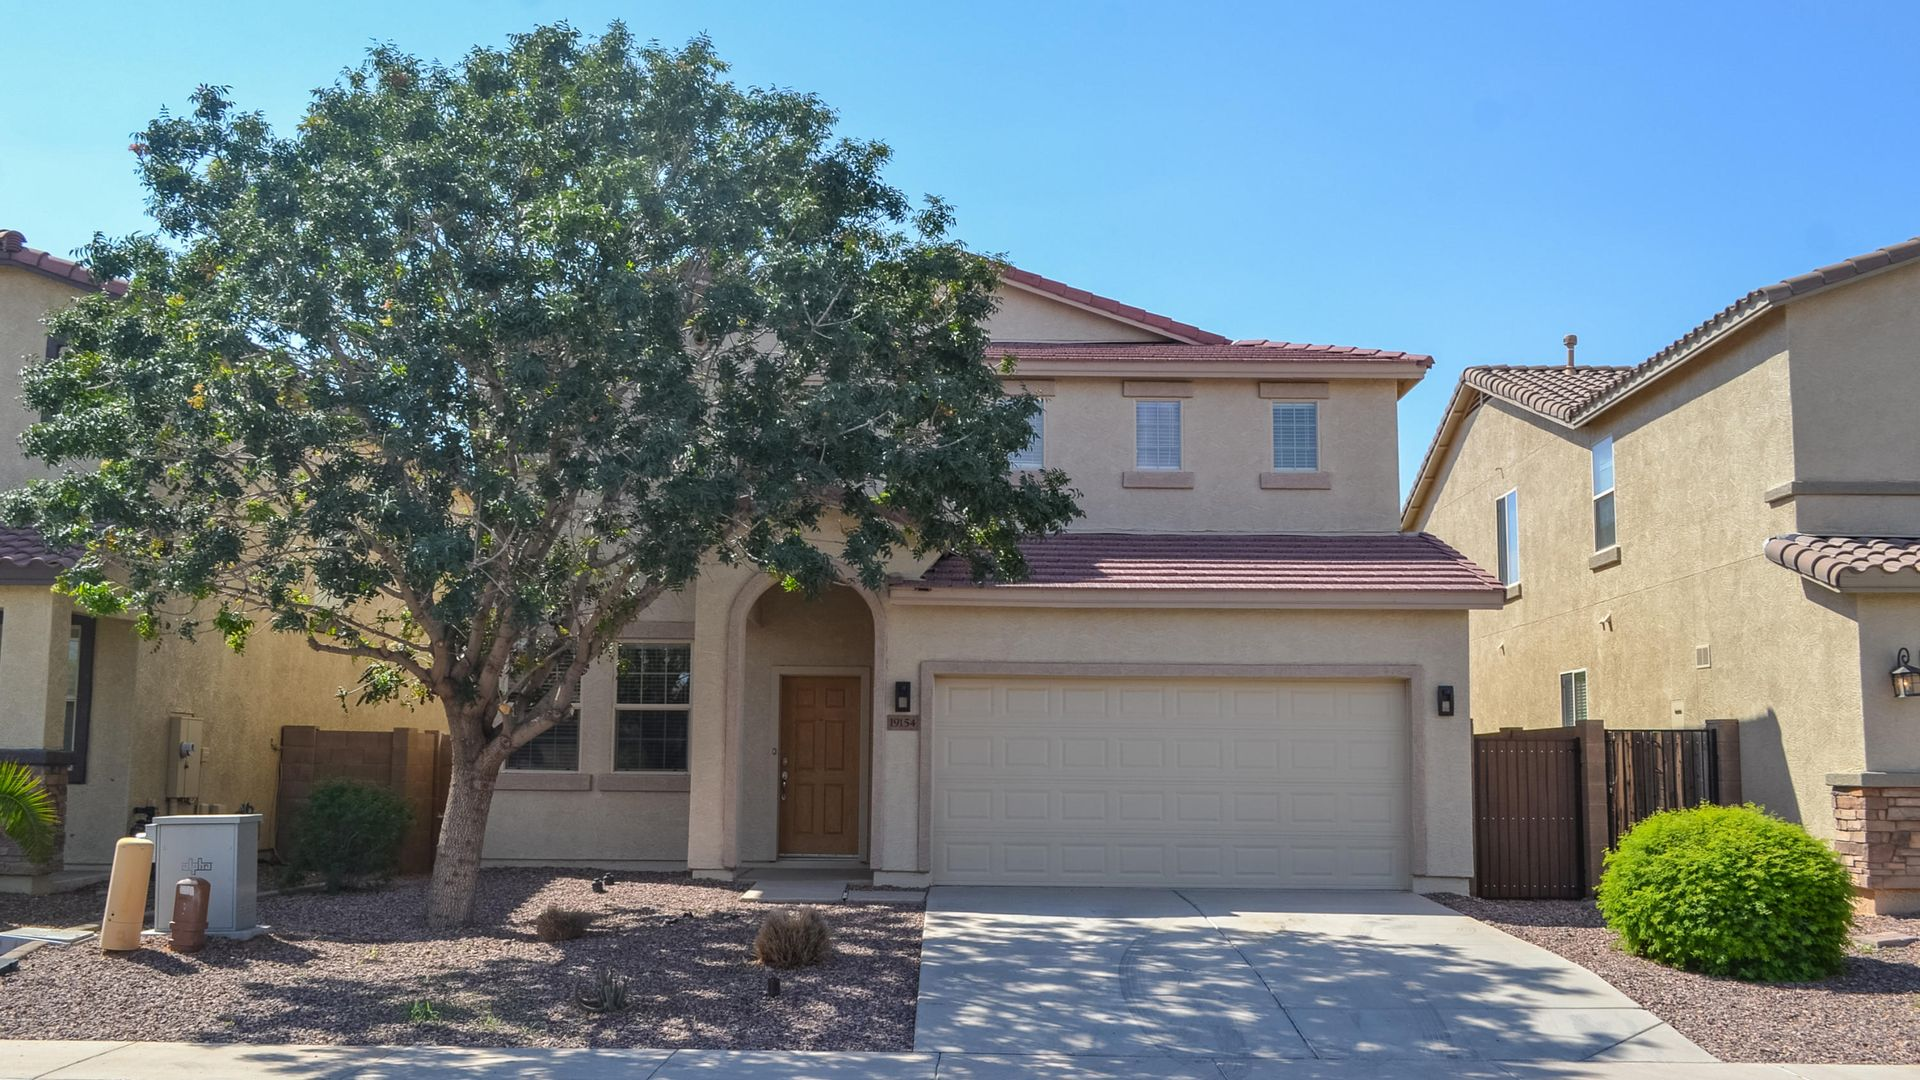 Houses For Rent in Maricopa AZ - 50 Homes | Zillow